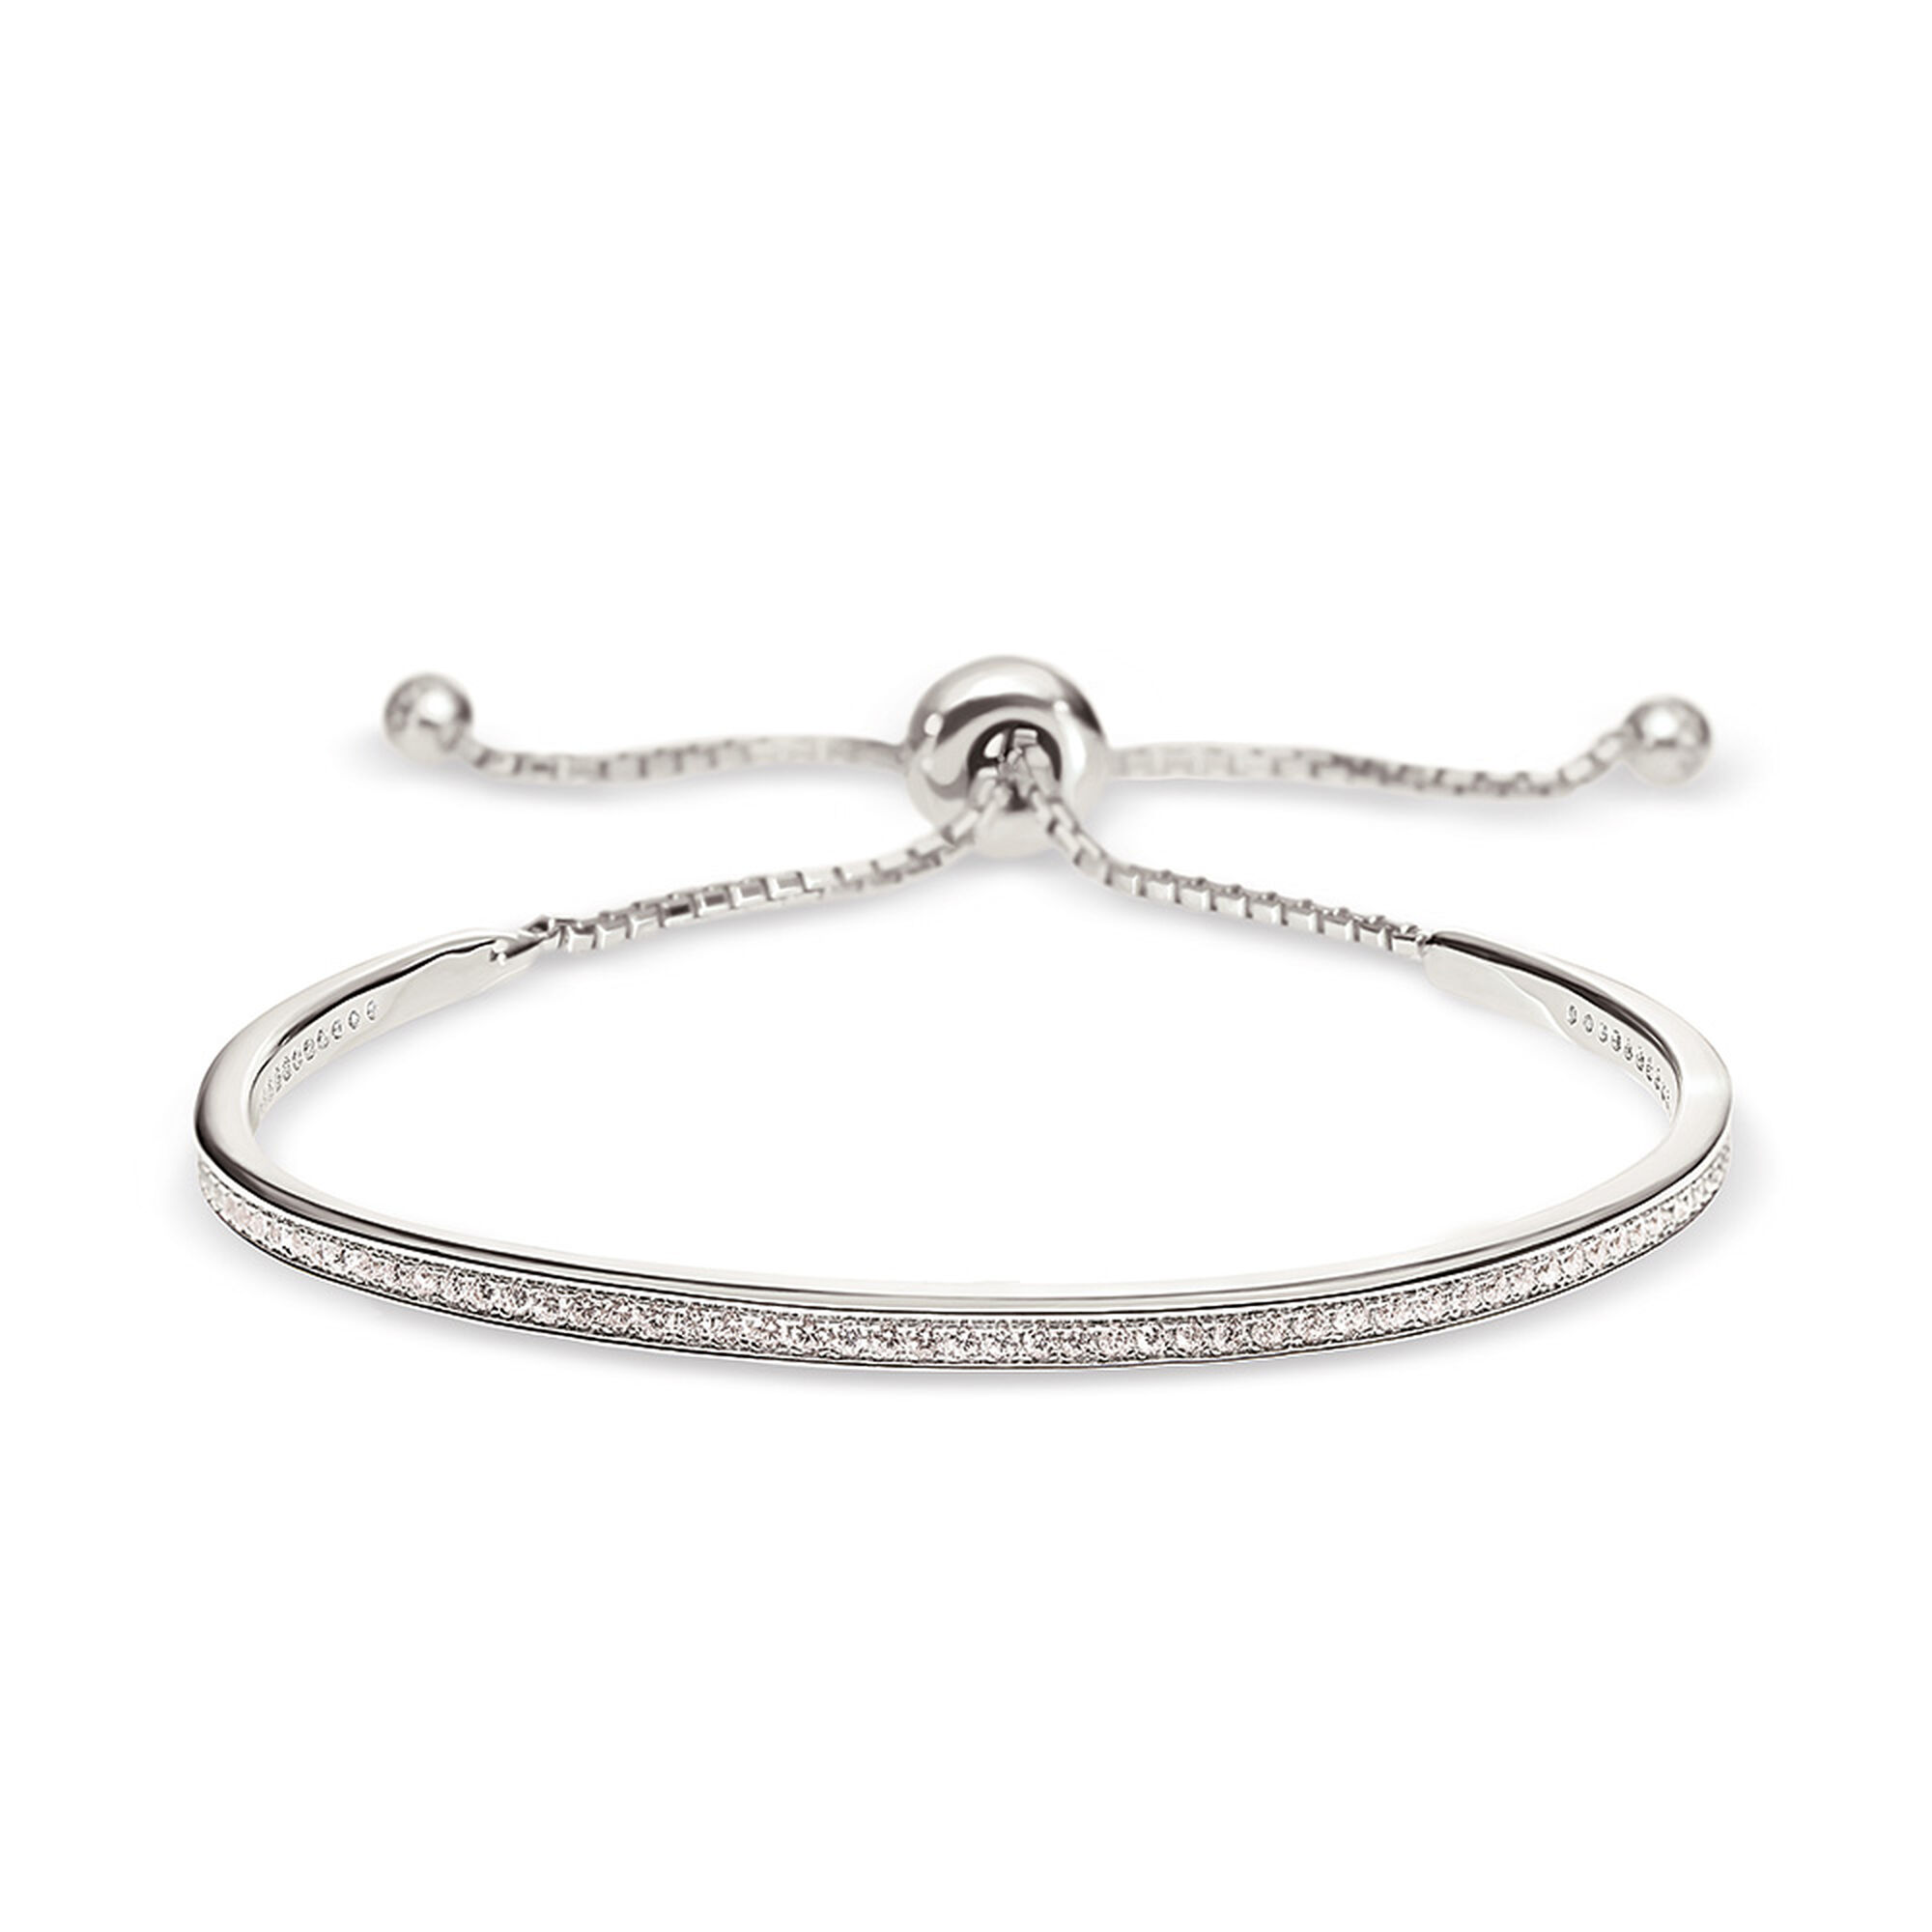 the adjustable silver exceptional crafted solid our you are sterling pin bracelet knot bangles quality celtic of knots genuine sure bangle love to